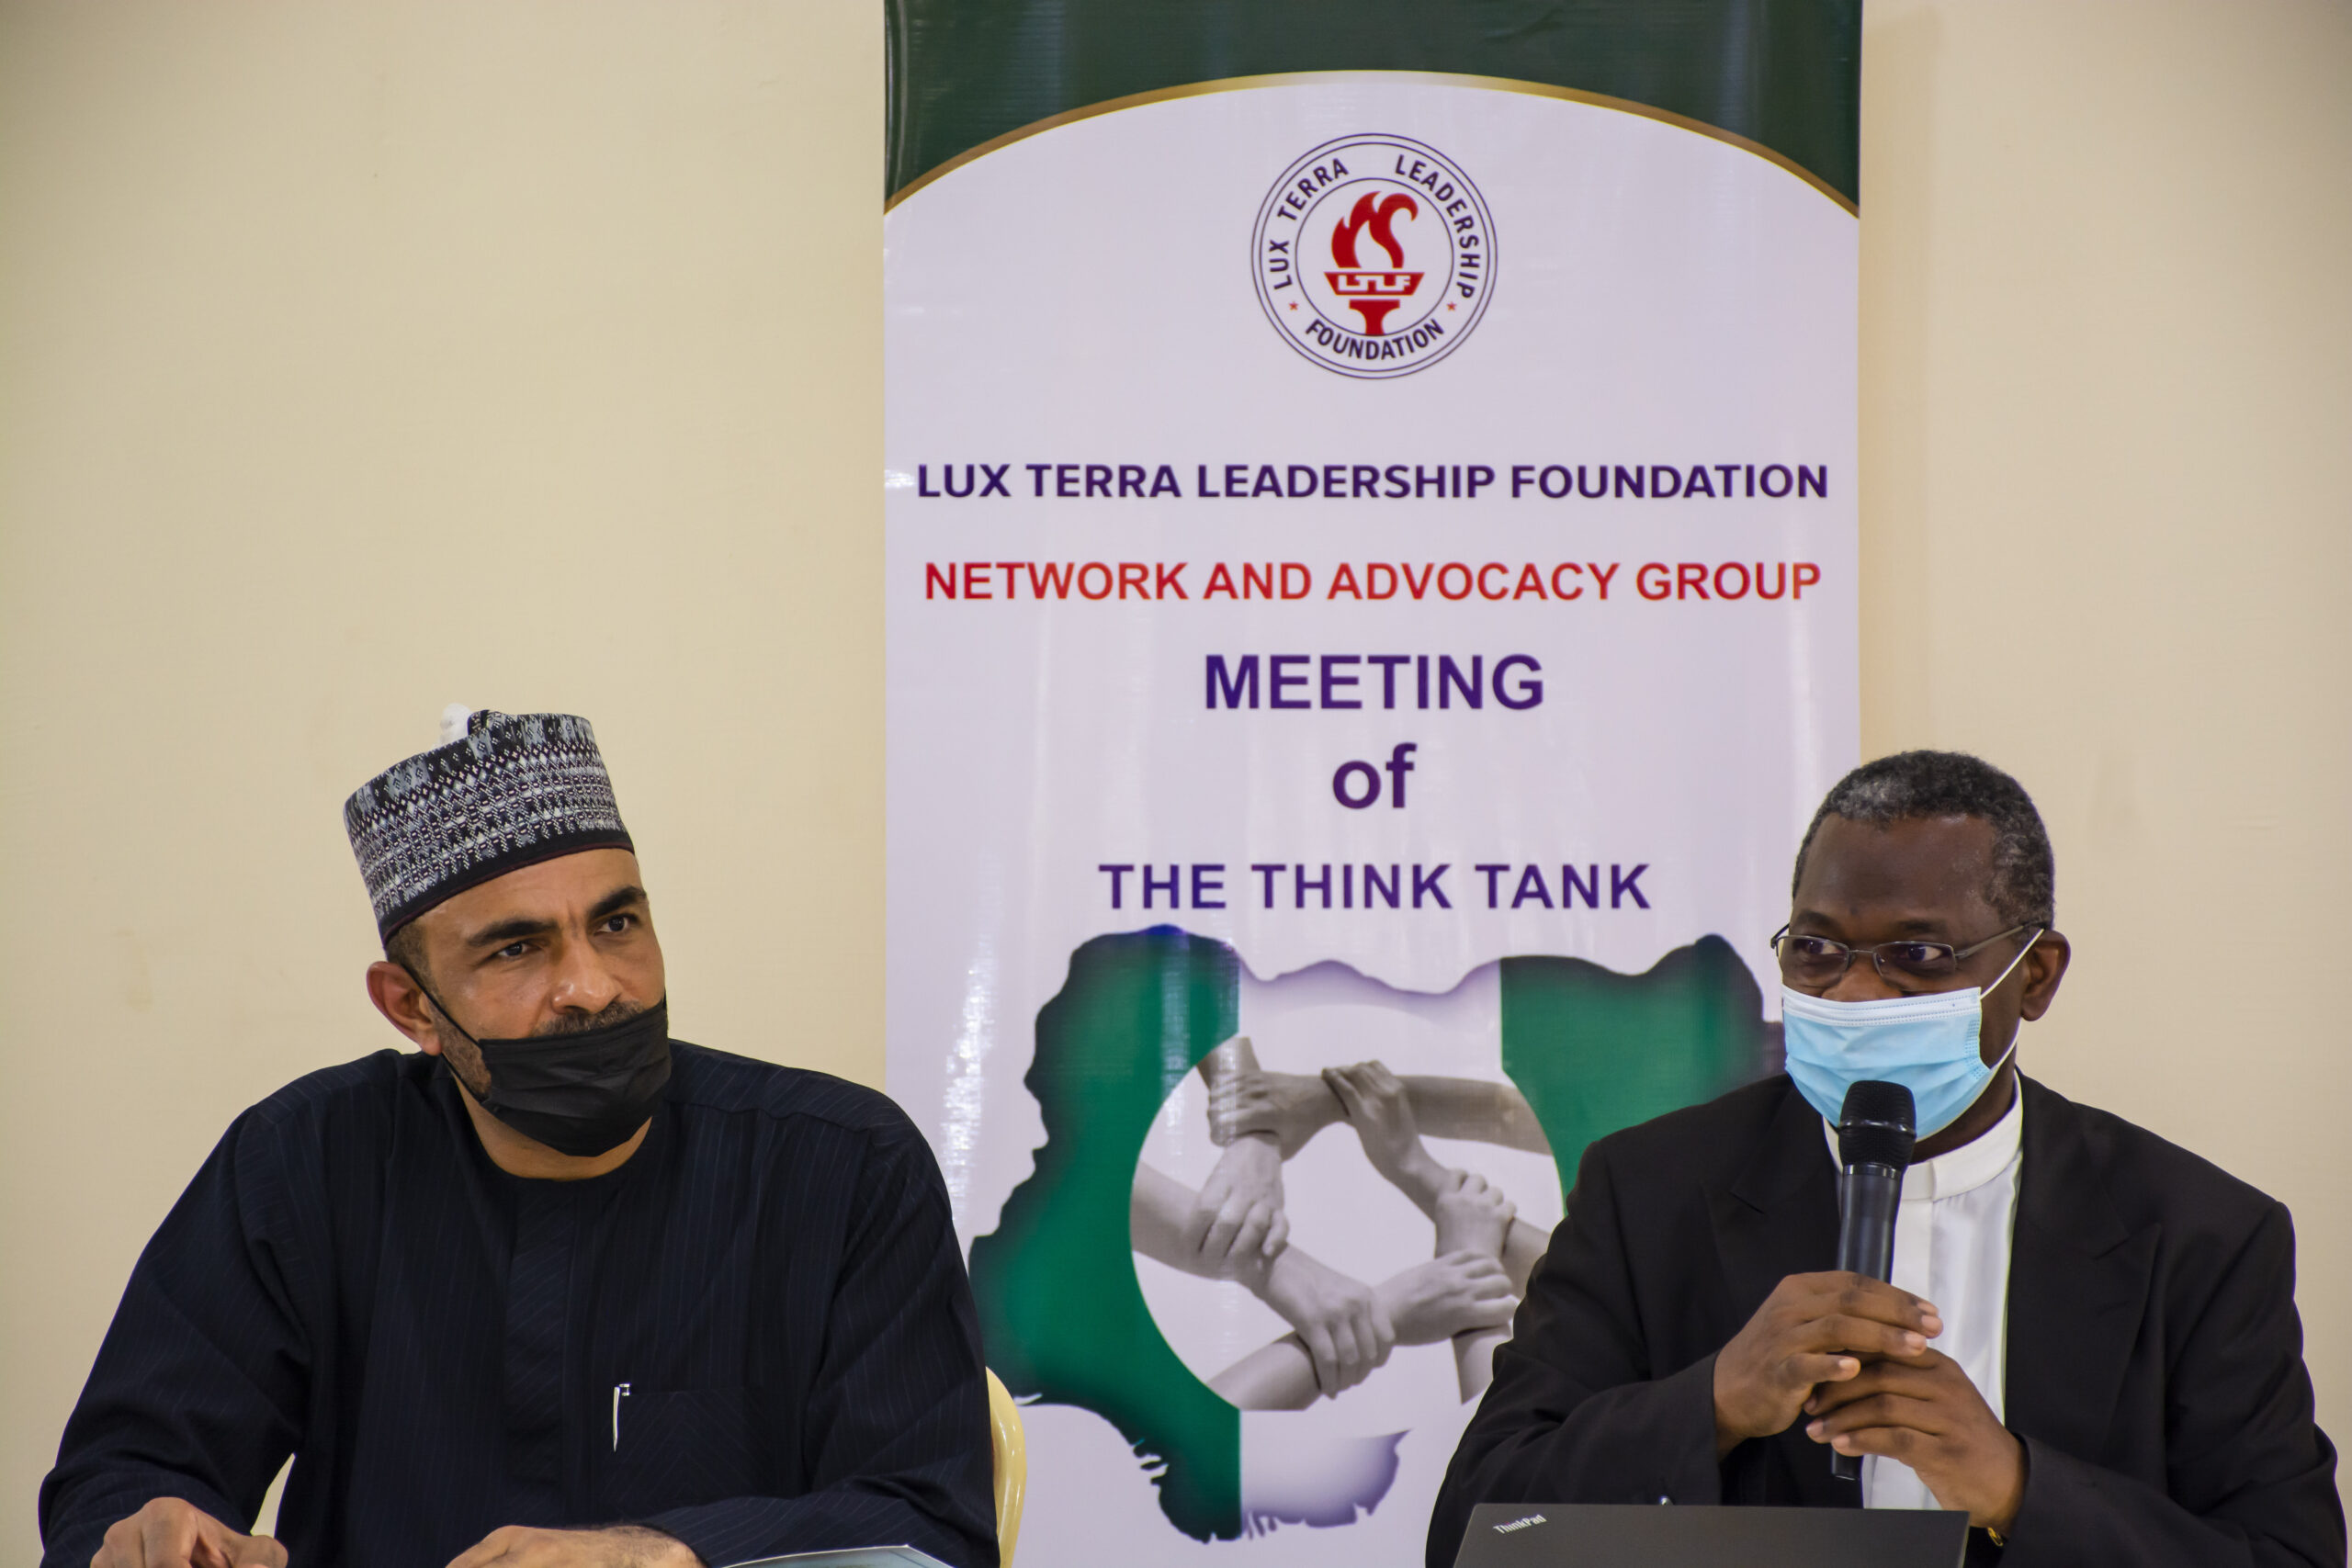 LUX TERRA INAUGURATES A NETWORK AND ADVOCACY THINK THANK